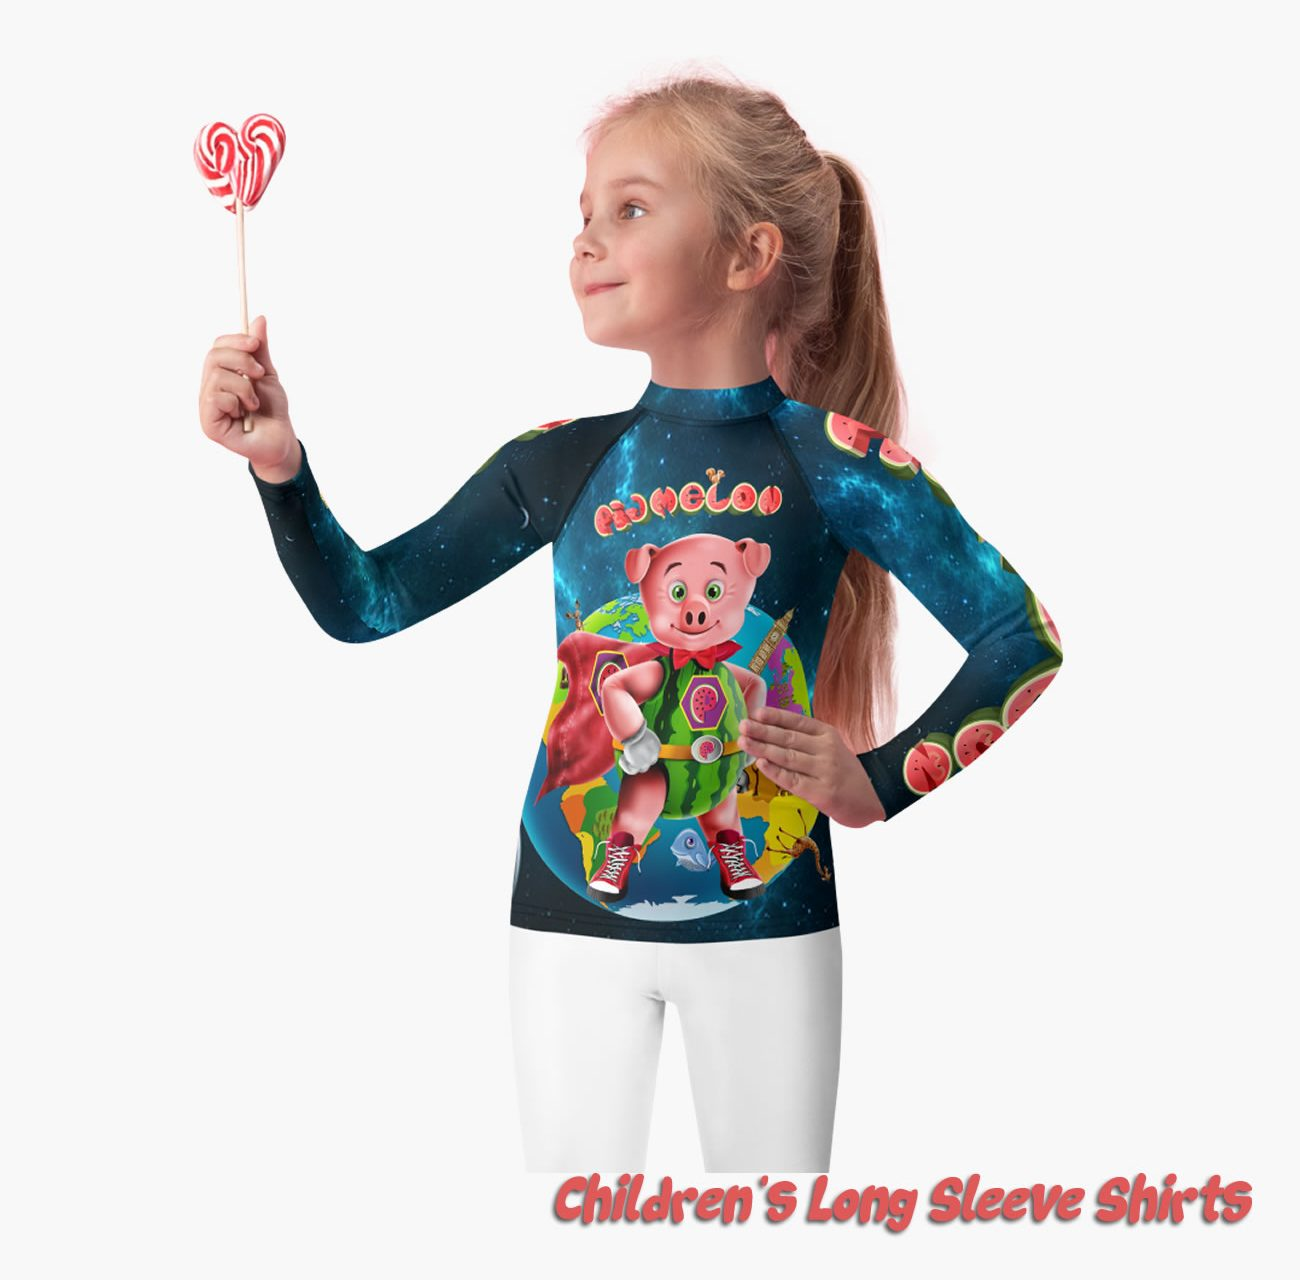 Pigmelon Children Long Sleeve Shirts